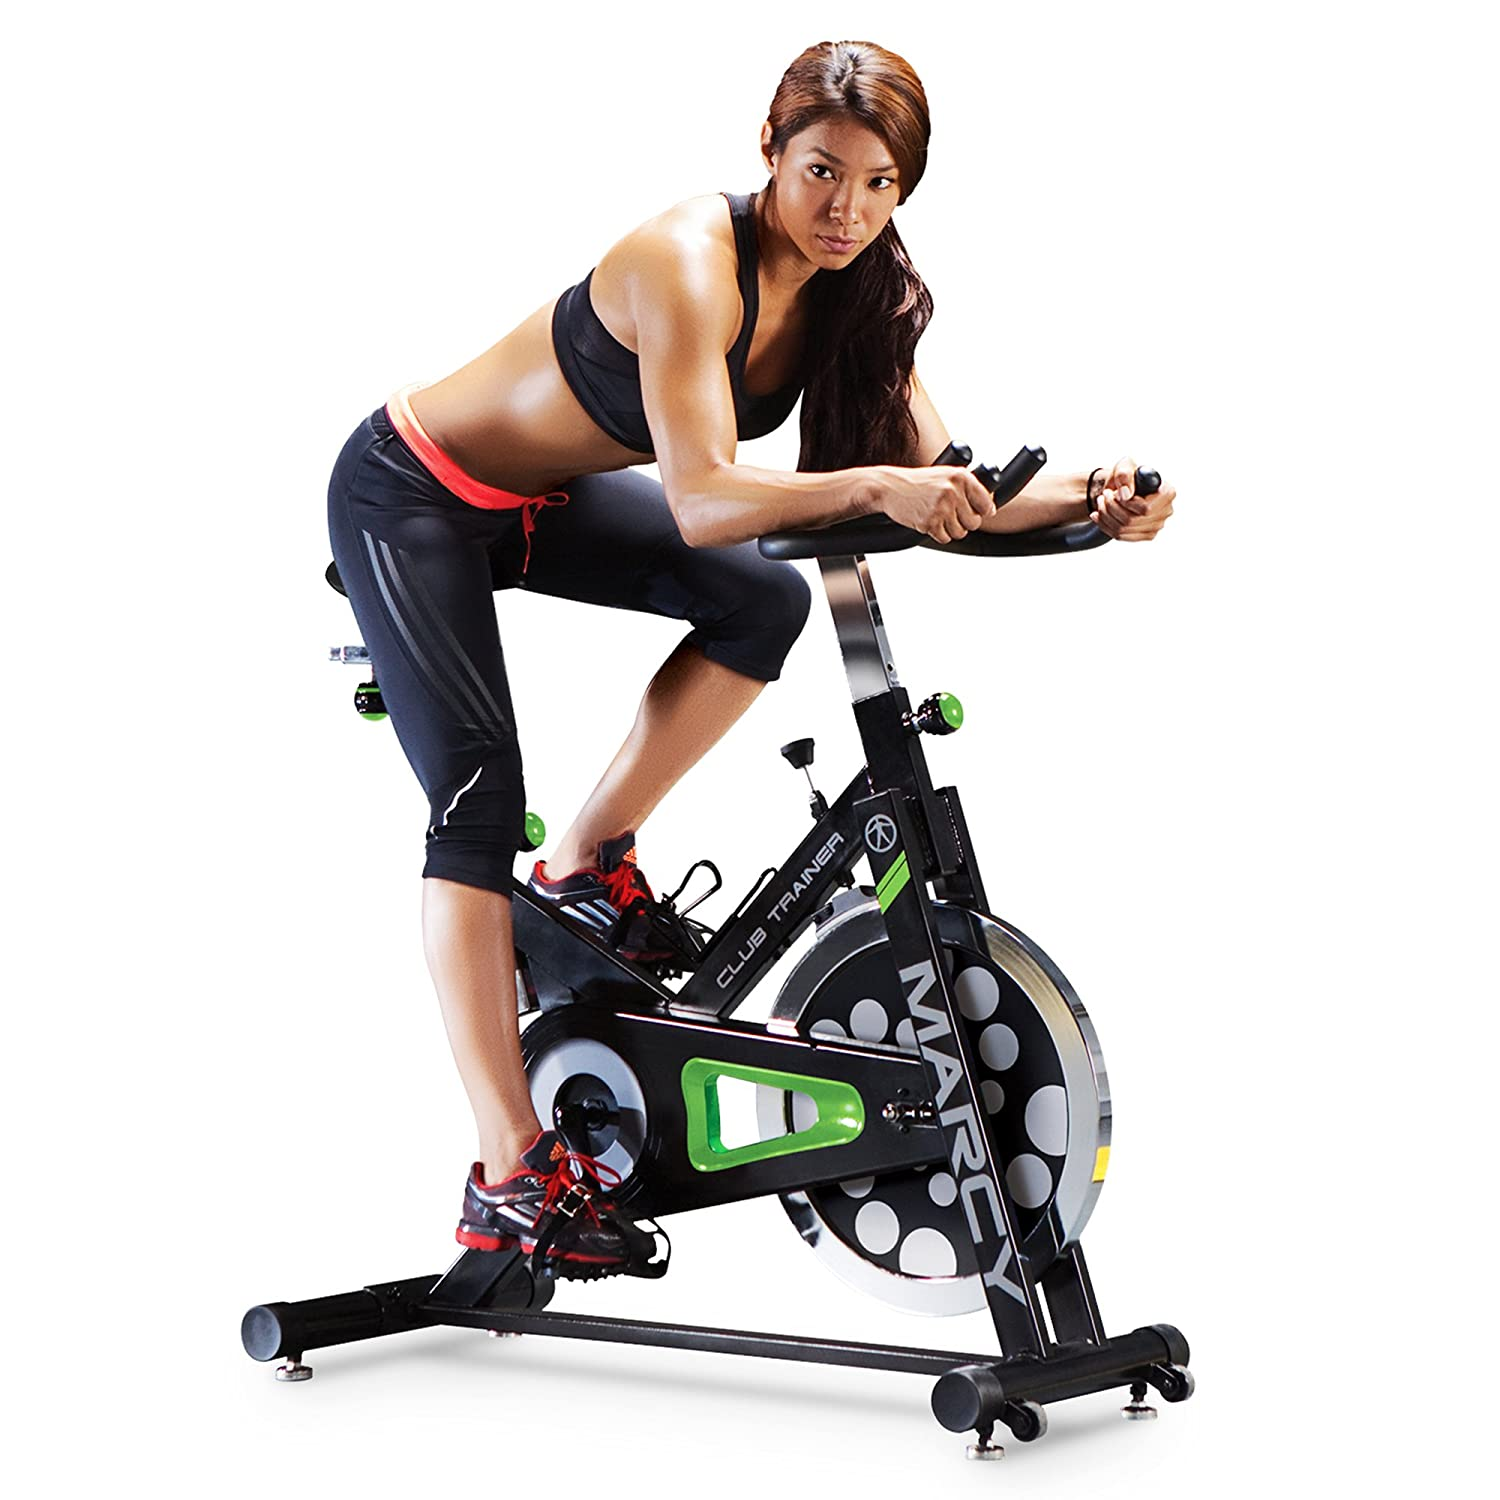 Marcy Club Revolution XJ-3220 Spin Bike Black Friday Deal 2020